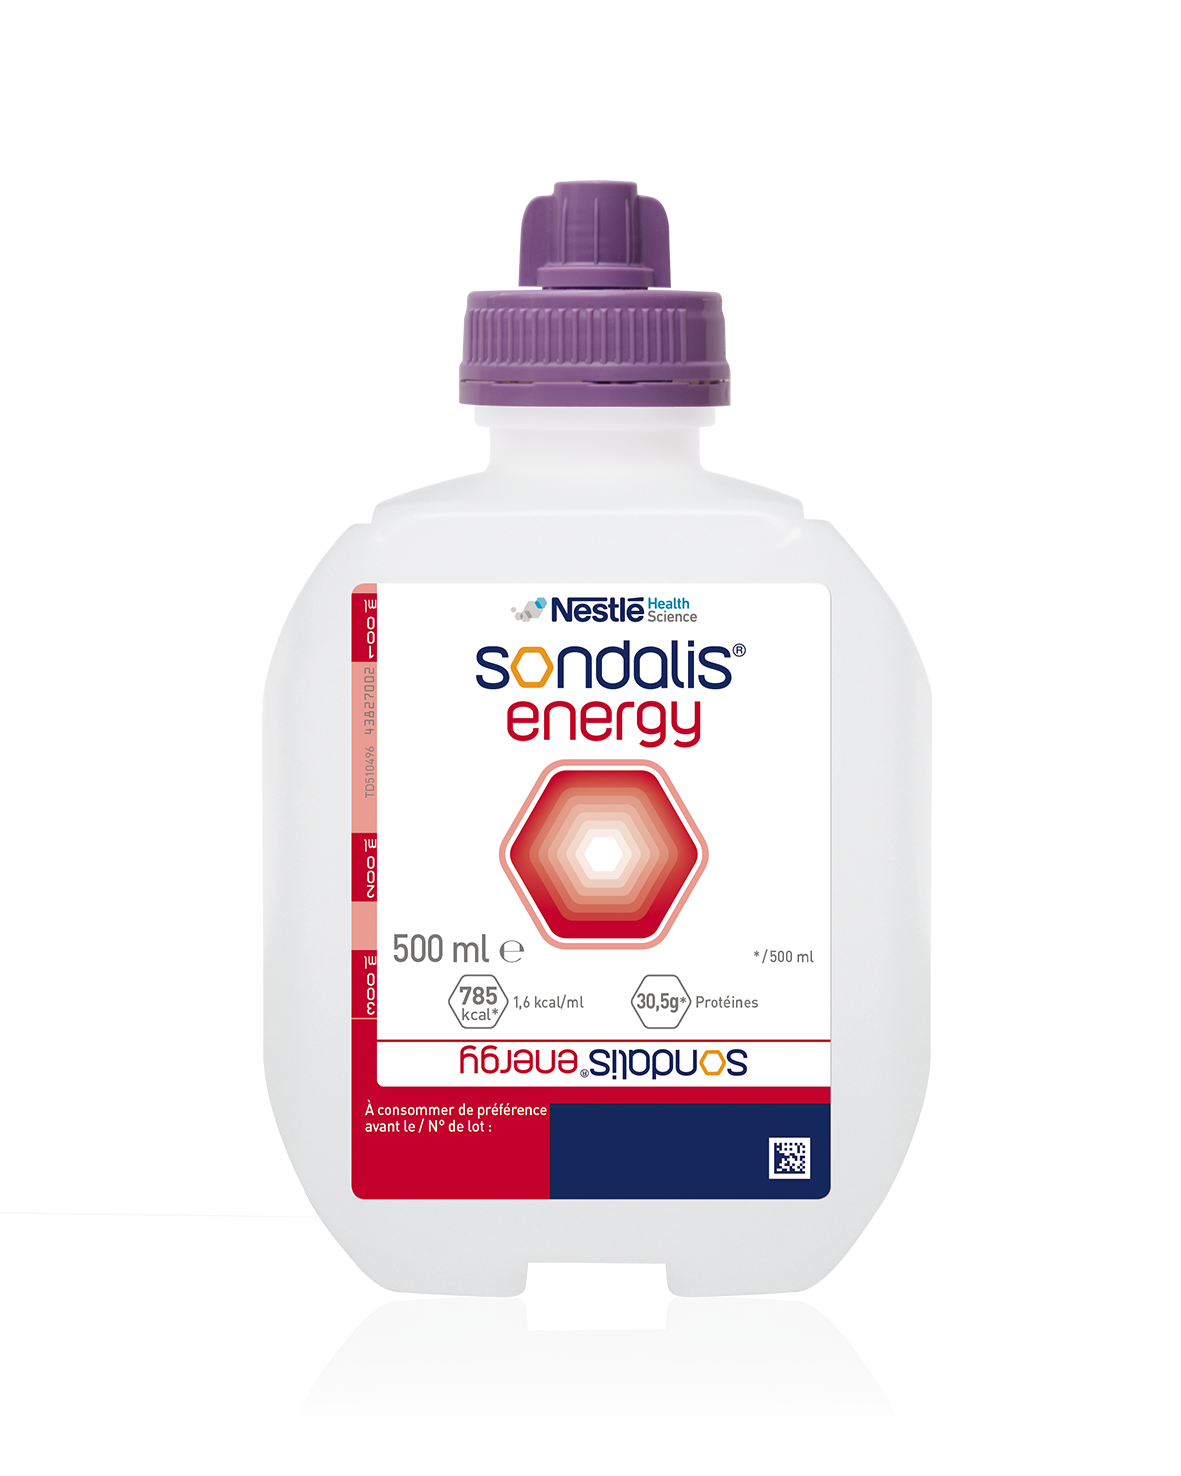 SONDALIS ENERGY Nutrition Entérale | Nestlé Health Science